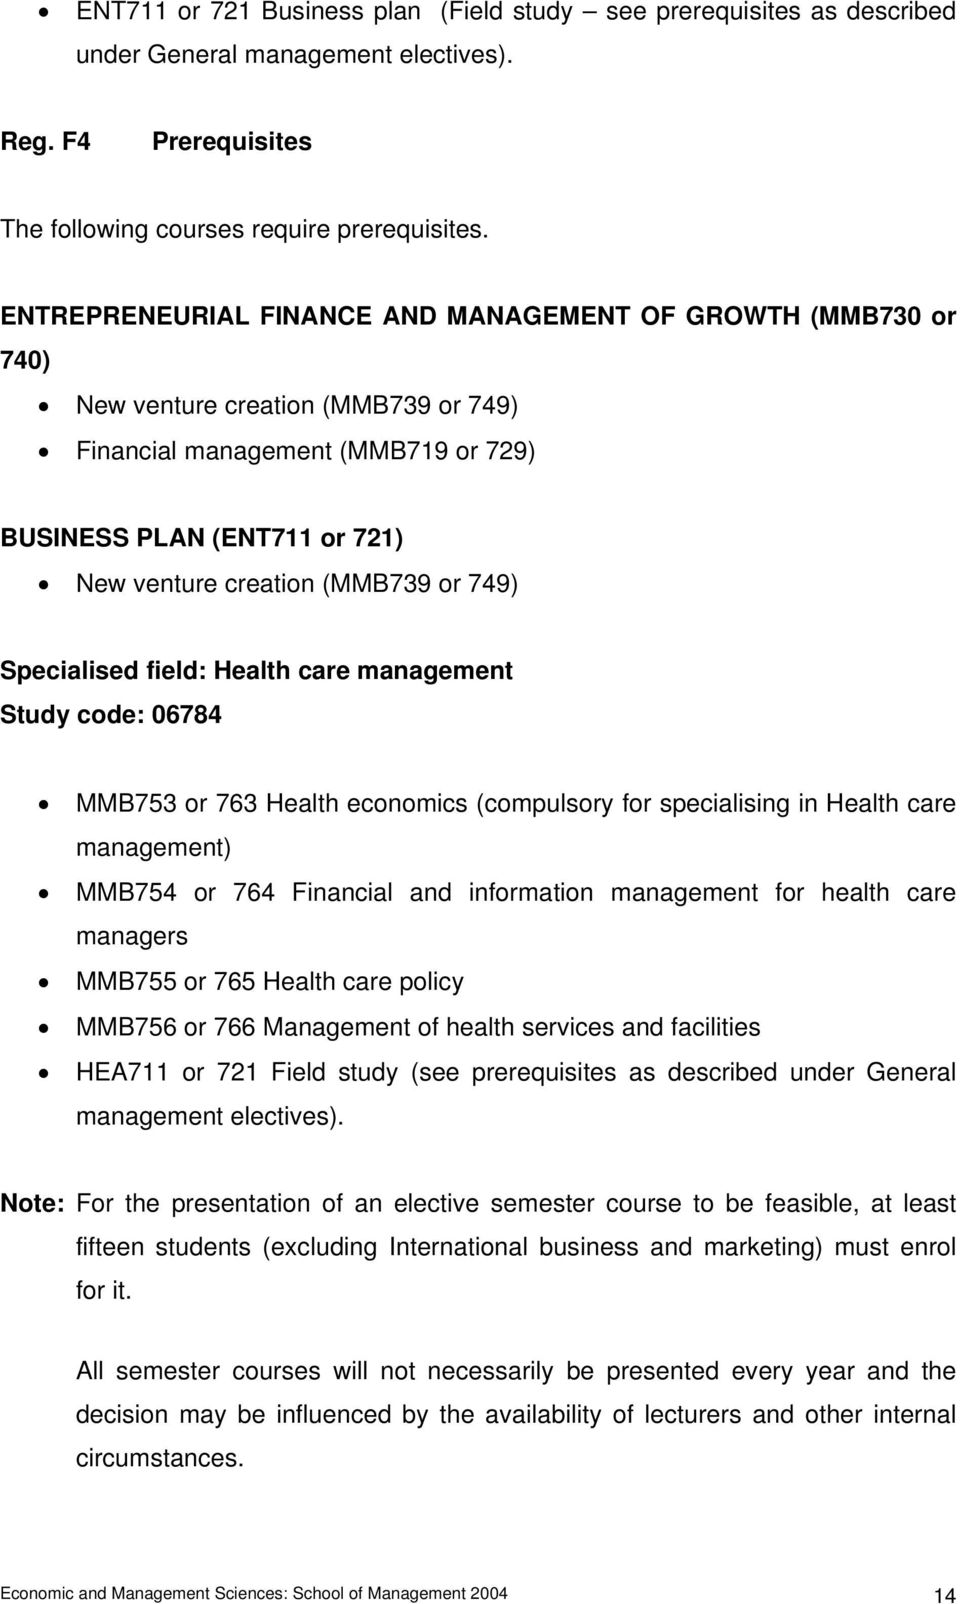 or 749) Specialised field: Health care management Study code: 06784 MMB753 or 763 Health economics (compulsory for specialising in Health care management) MMB754 or 764 Financial and information